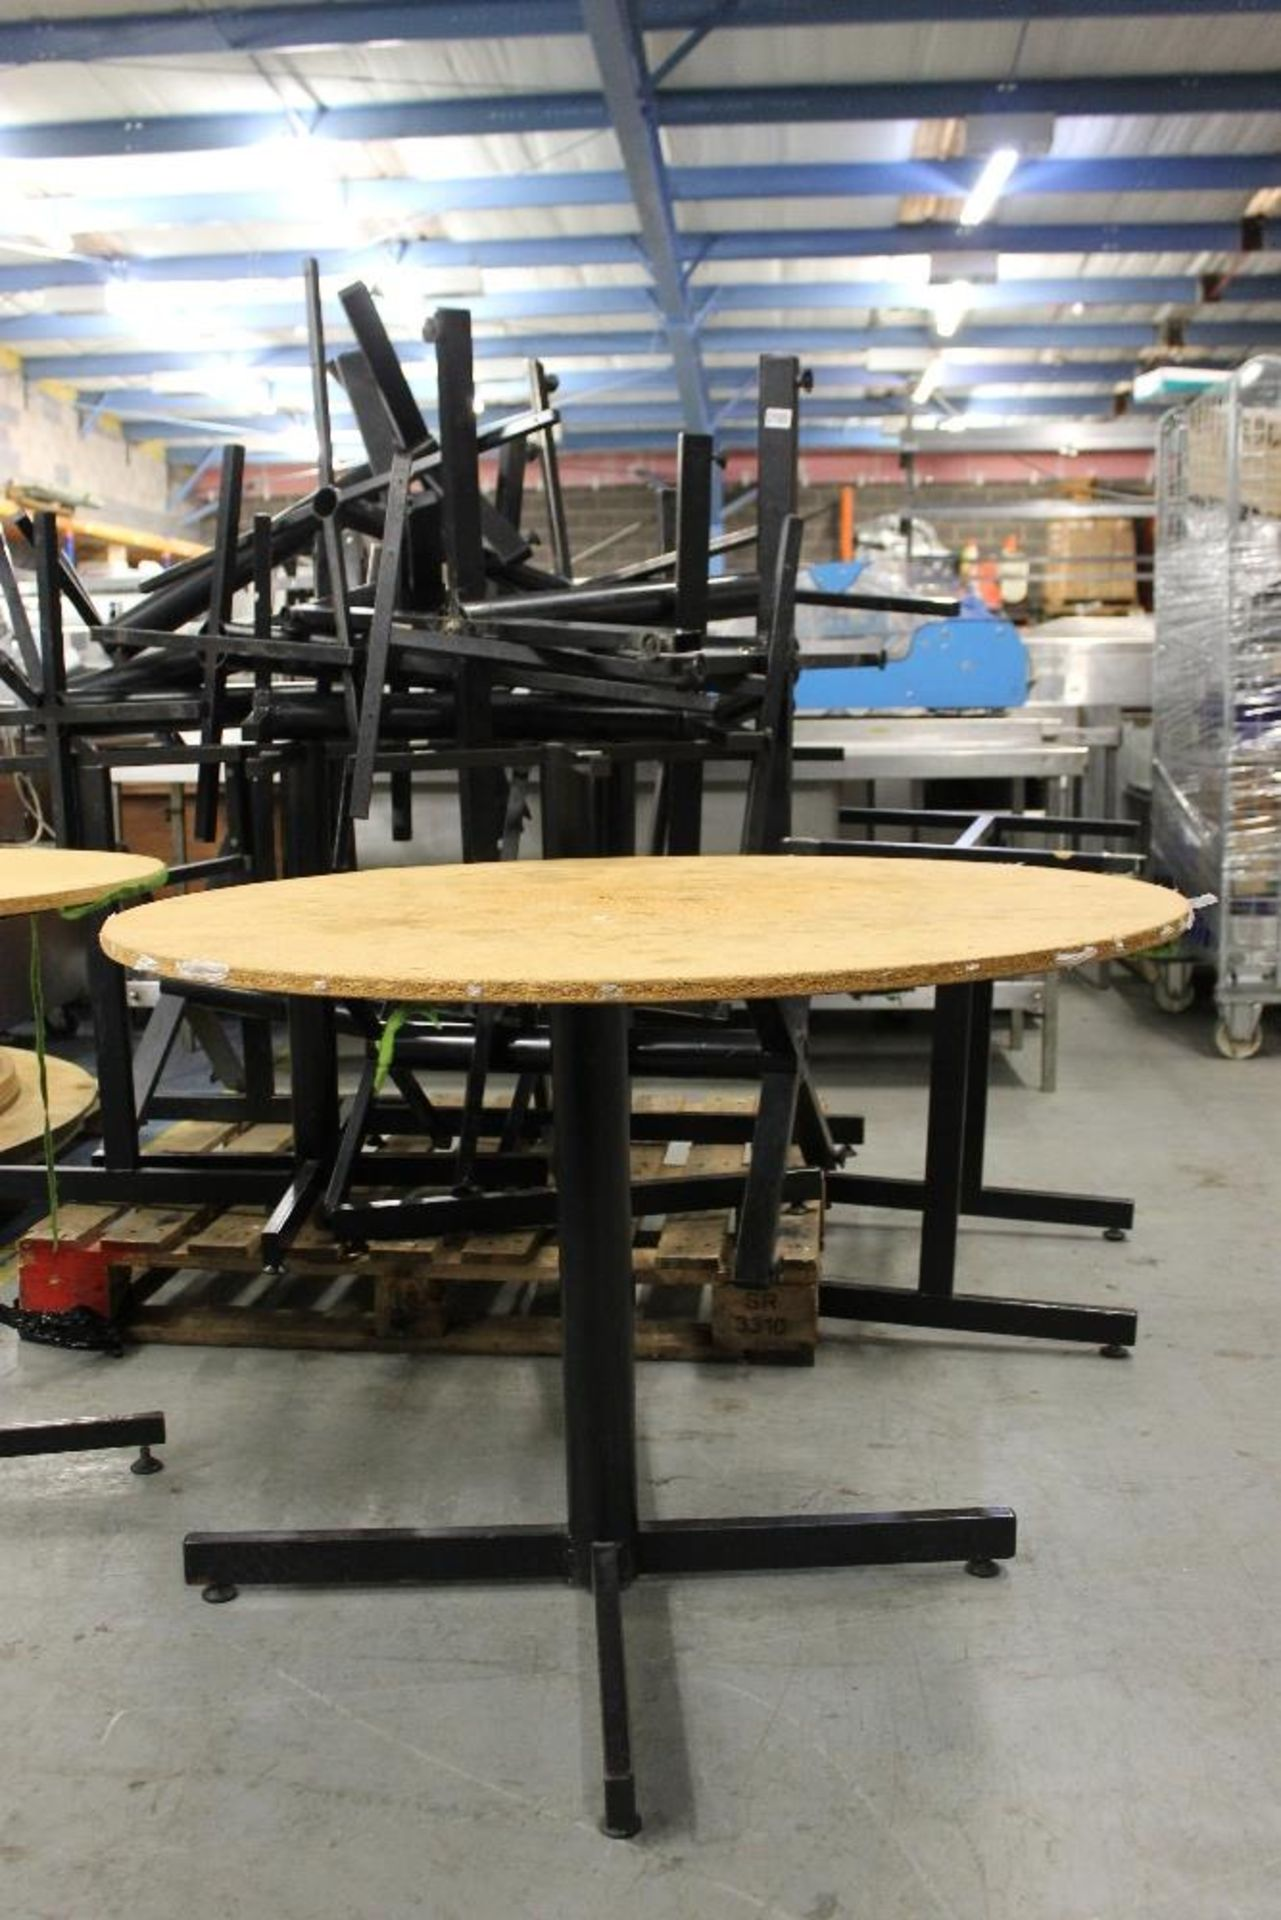 Lot 5 - Job Lot of Banqueting Tables to be sold as 1 Lot – 27 in Total - 3 Sizes 4 x Large-10 Medium & 14